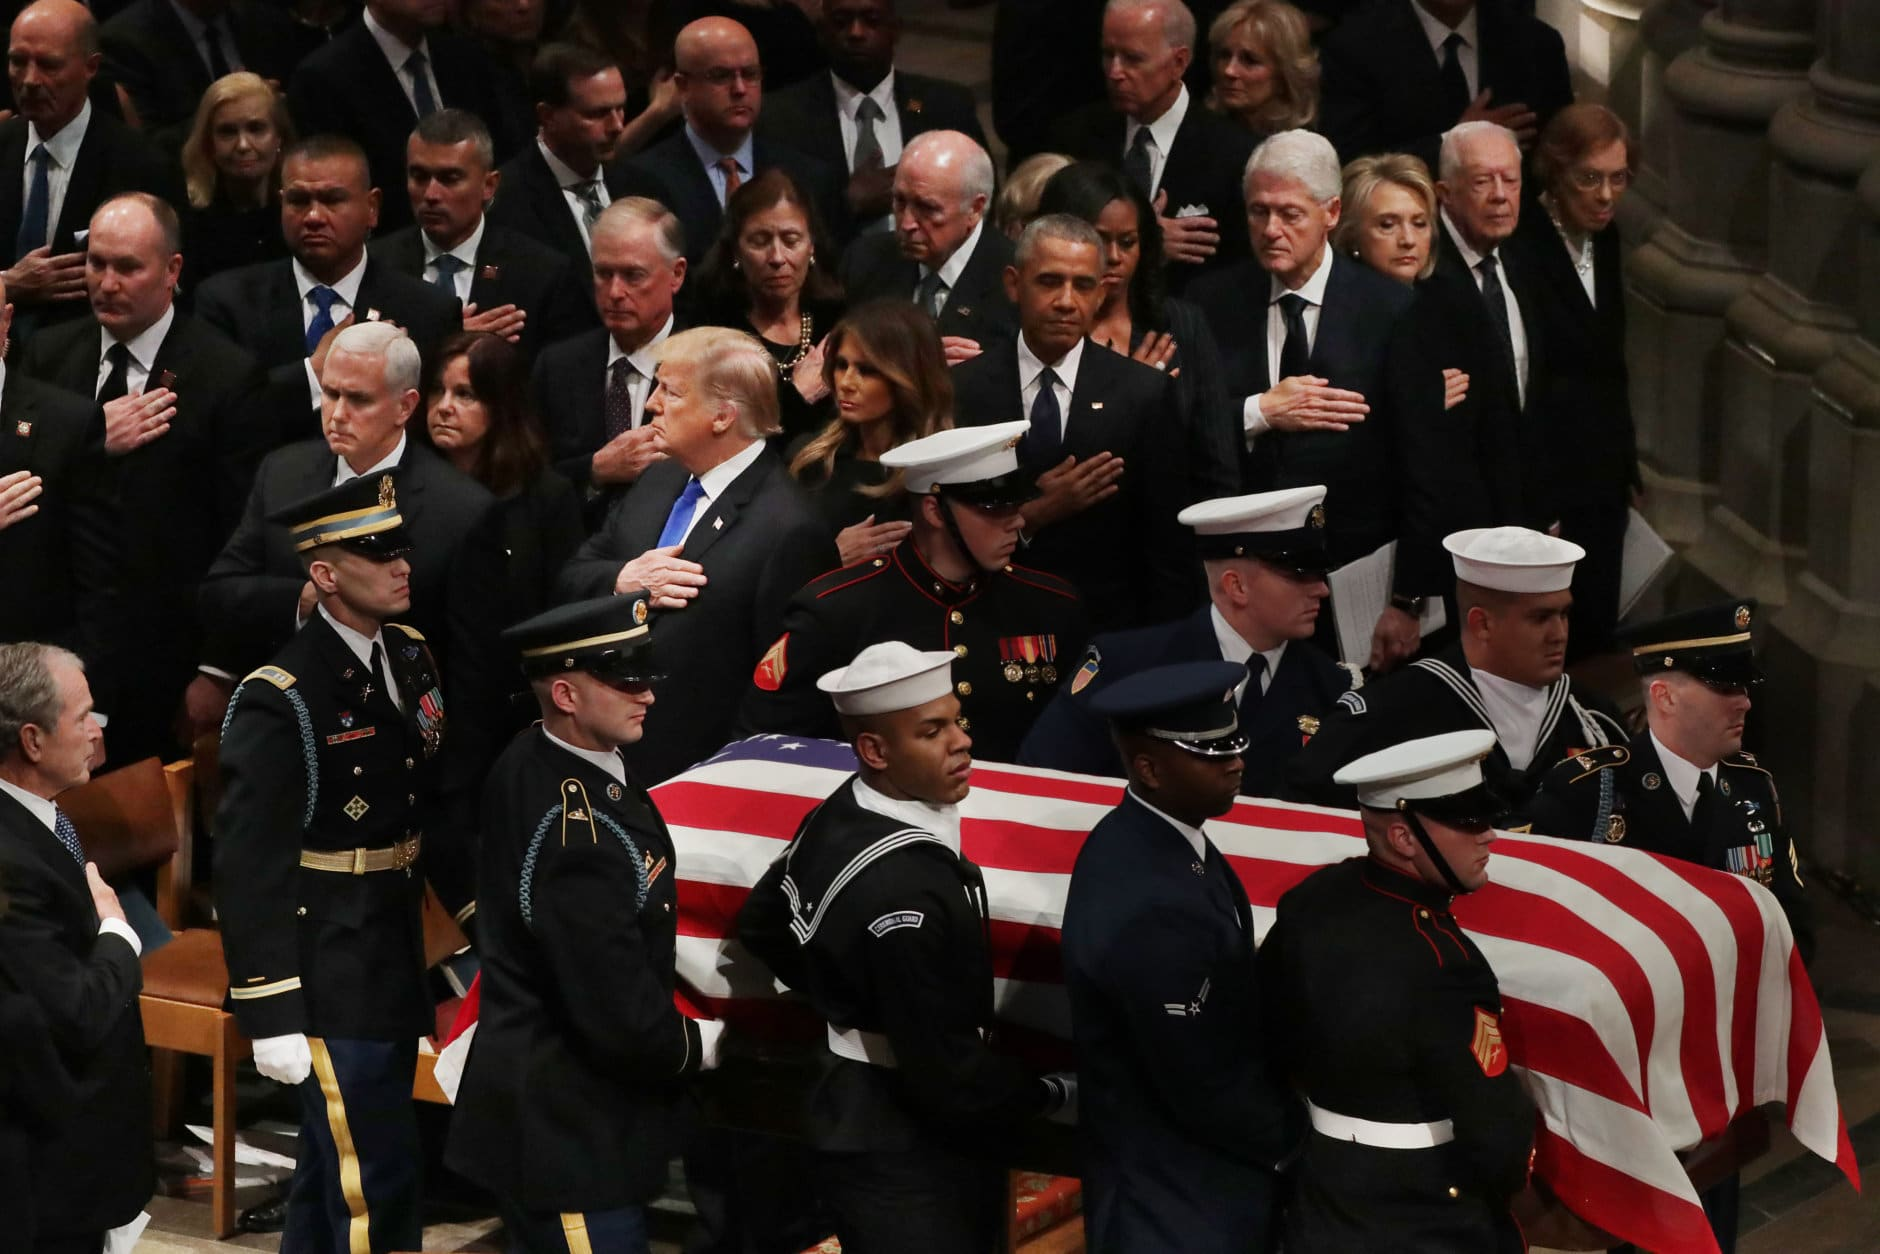 WASHINGTON, DC - DECEMBER 05:  President Donald Trump, first lady Melania Trump and former presidents, vice presidents, first ladies and spouses attend the state funeral for former President George H.W. Bush at the National Cathedral December 05, 2018 in Washington, DC. A WWII combat veteran, Bush served as a member of Congress from Texas, ambassador to the United Nations, director of the CIA, vice president and 41st president of the United States.  (Photo by Chip Somodevilla/Getty Images)